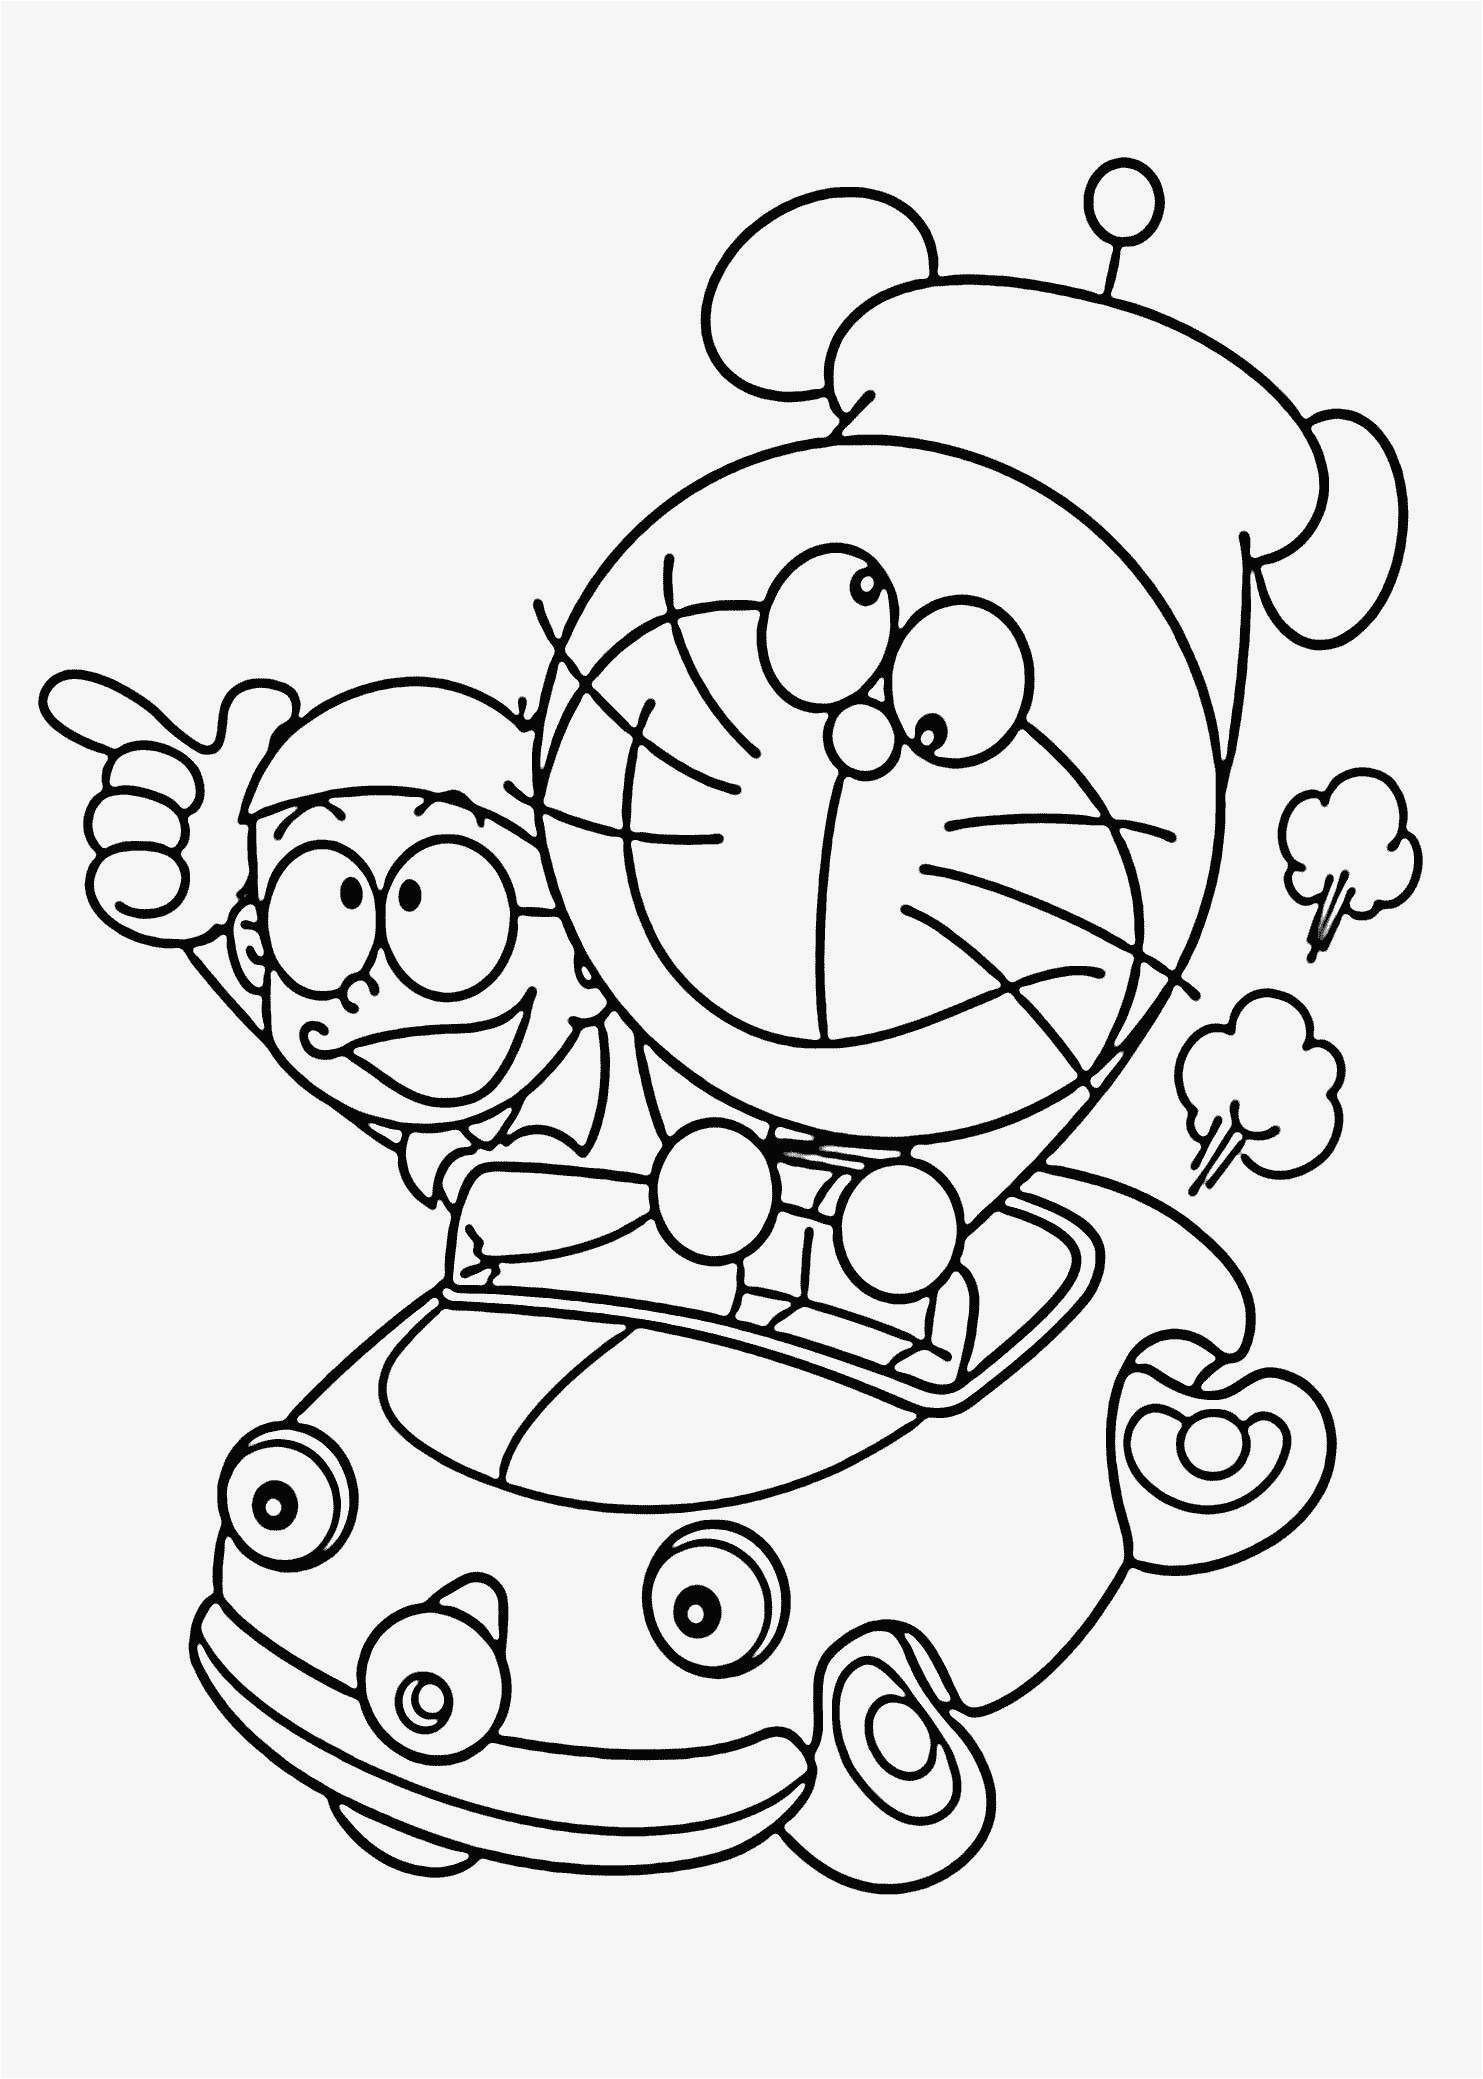 Christmas Coloring Book Online With Sample Pages You Can Color Line